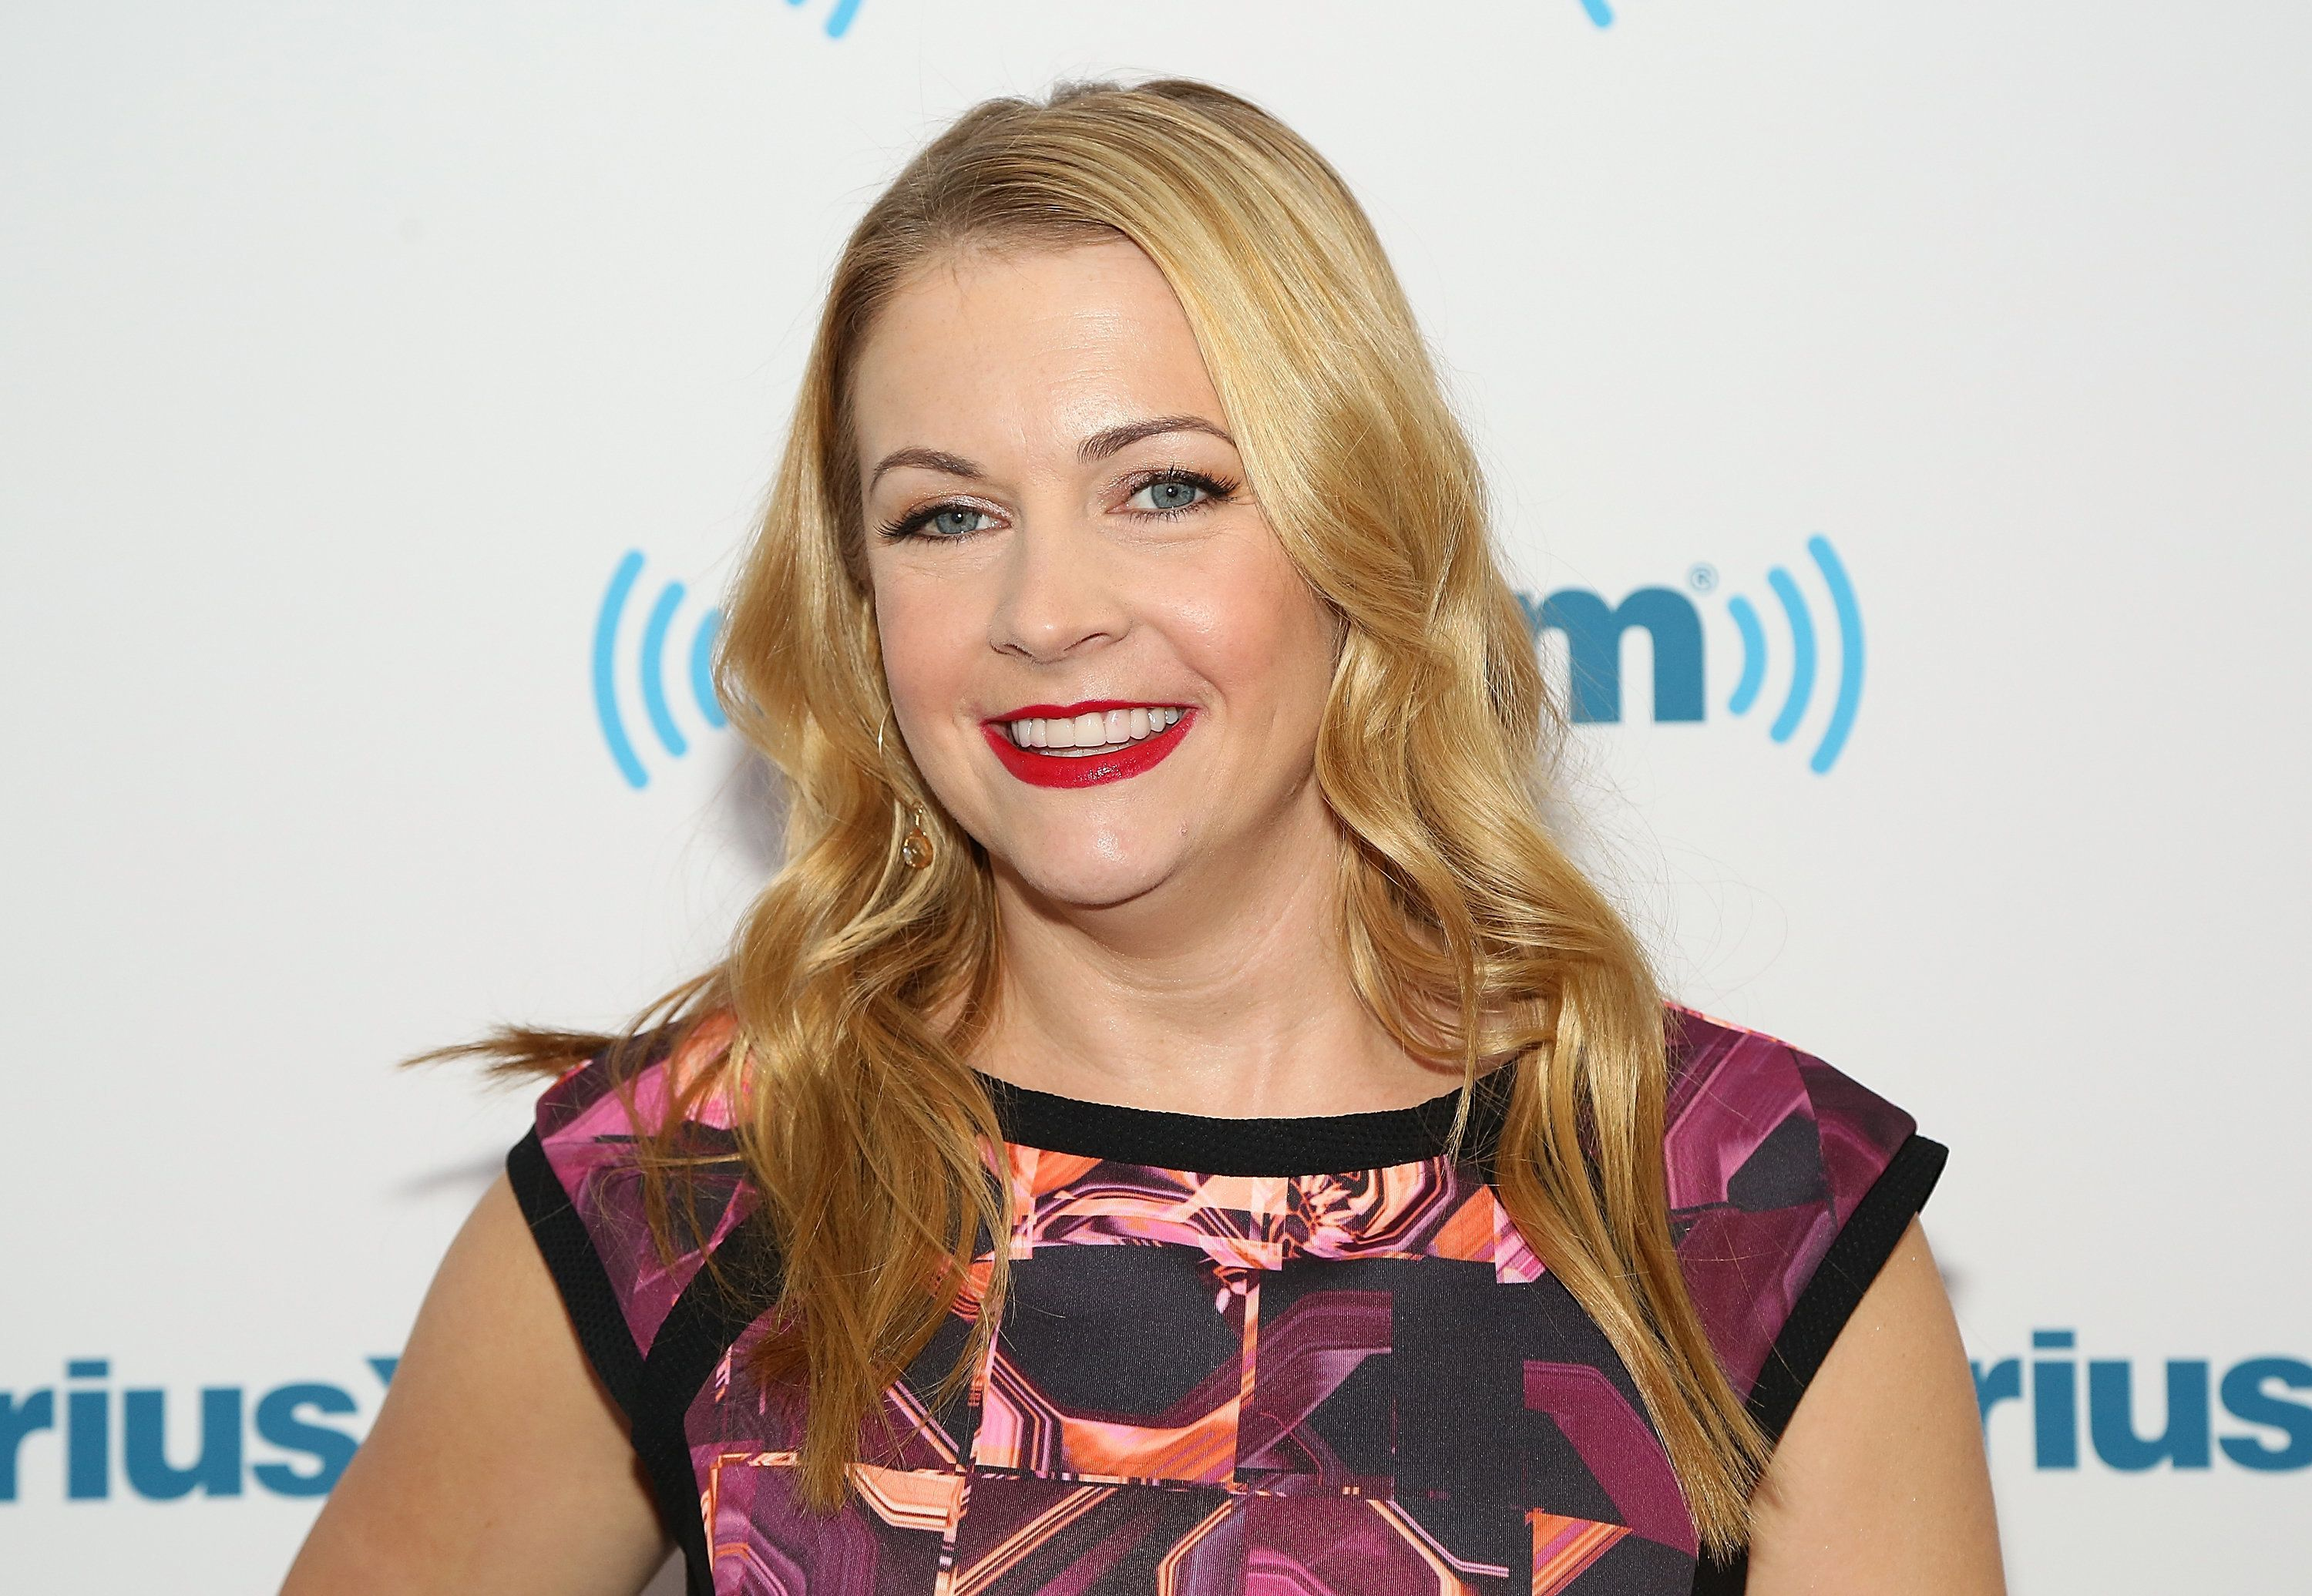 NEW YORK, NY - DECEMBER 08:  Melissa Joan Hart visits SiriusXM Studios on December 8, 2014 in New York City.  (Photo by Monica Schipper/Getty Images)